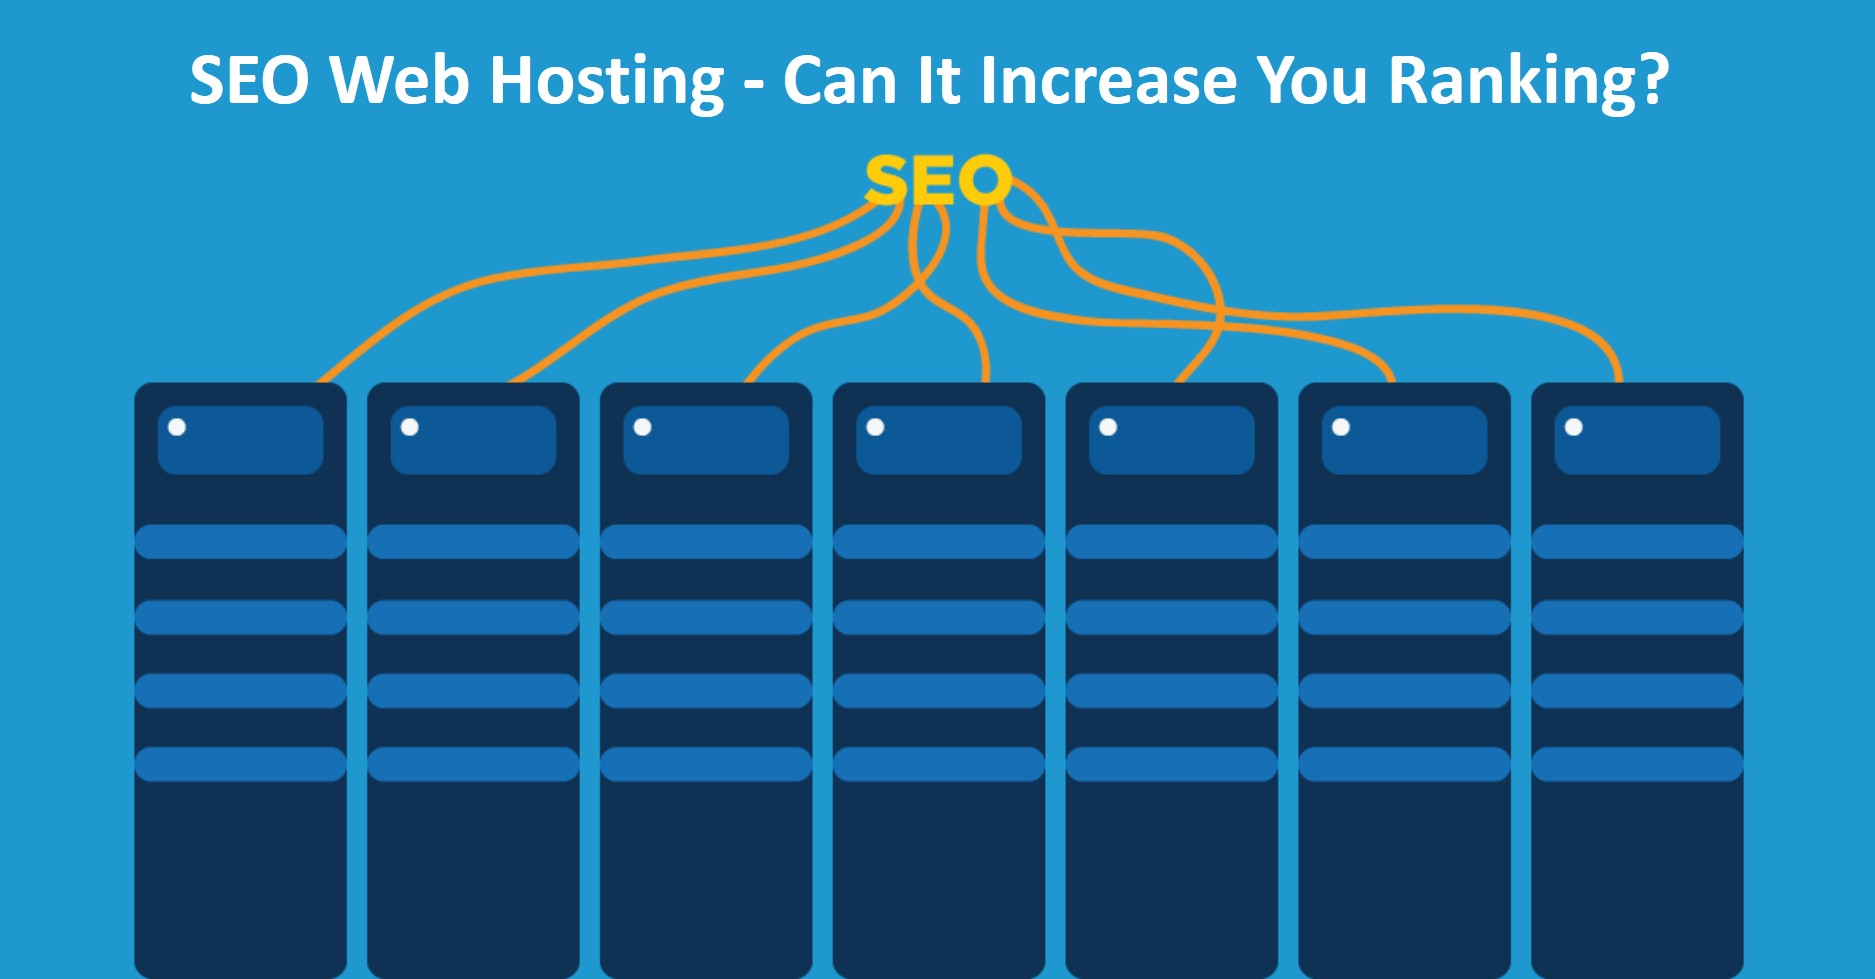 SEO Web Hosting - Can It Increase You Ranking?